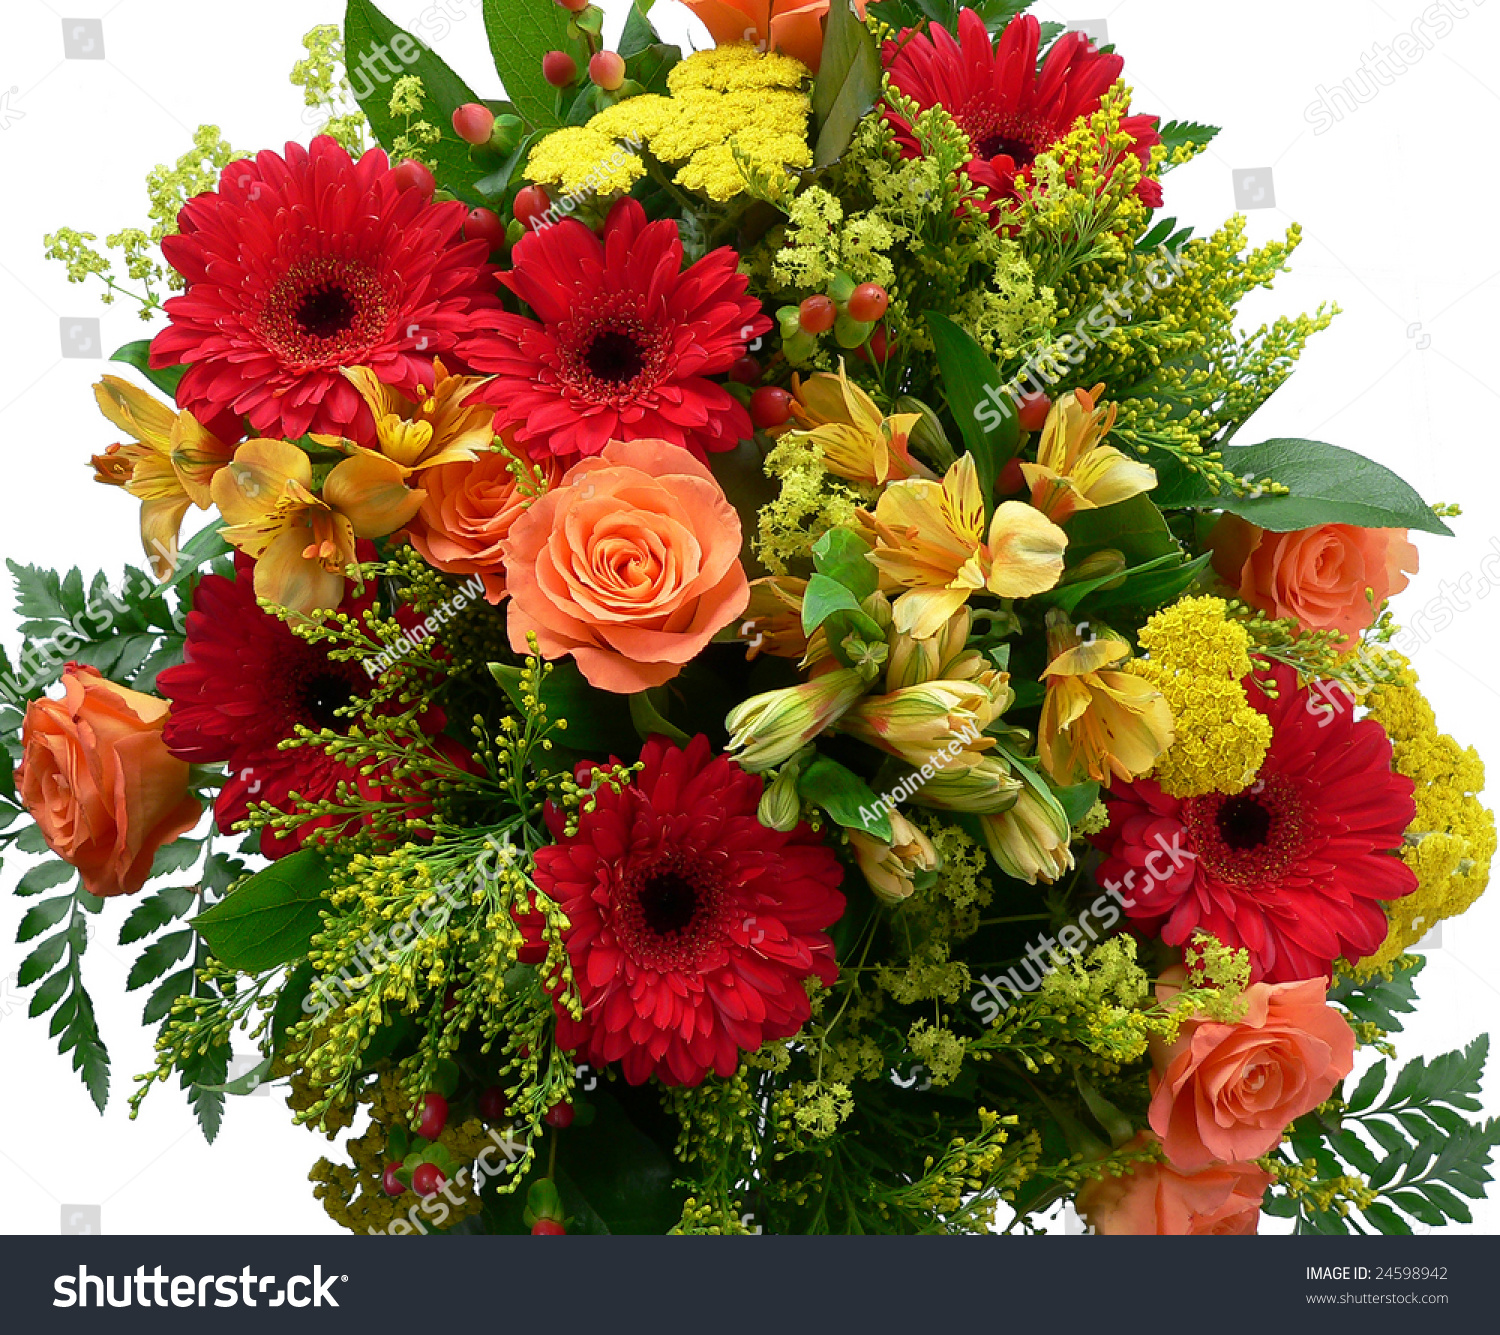 Beautiful bunch different flowers valentines day stock photo image beautiful bunch of different flowers valentines day theme izmirmasajfo